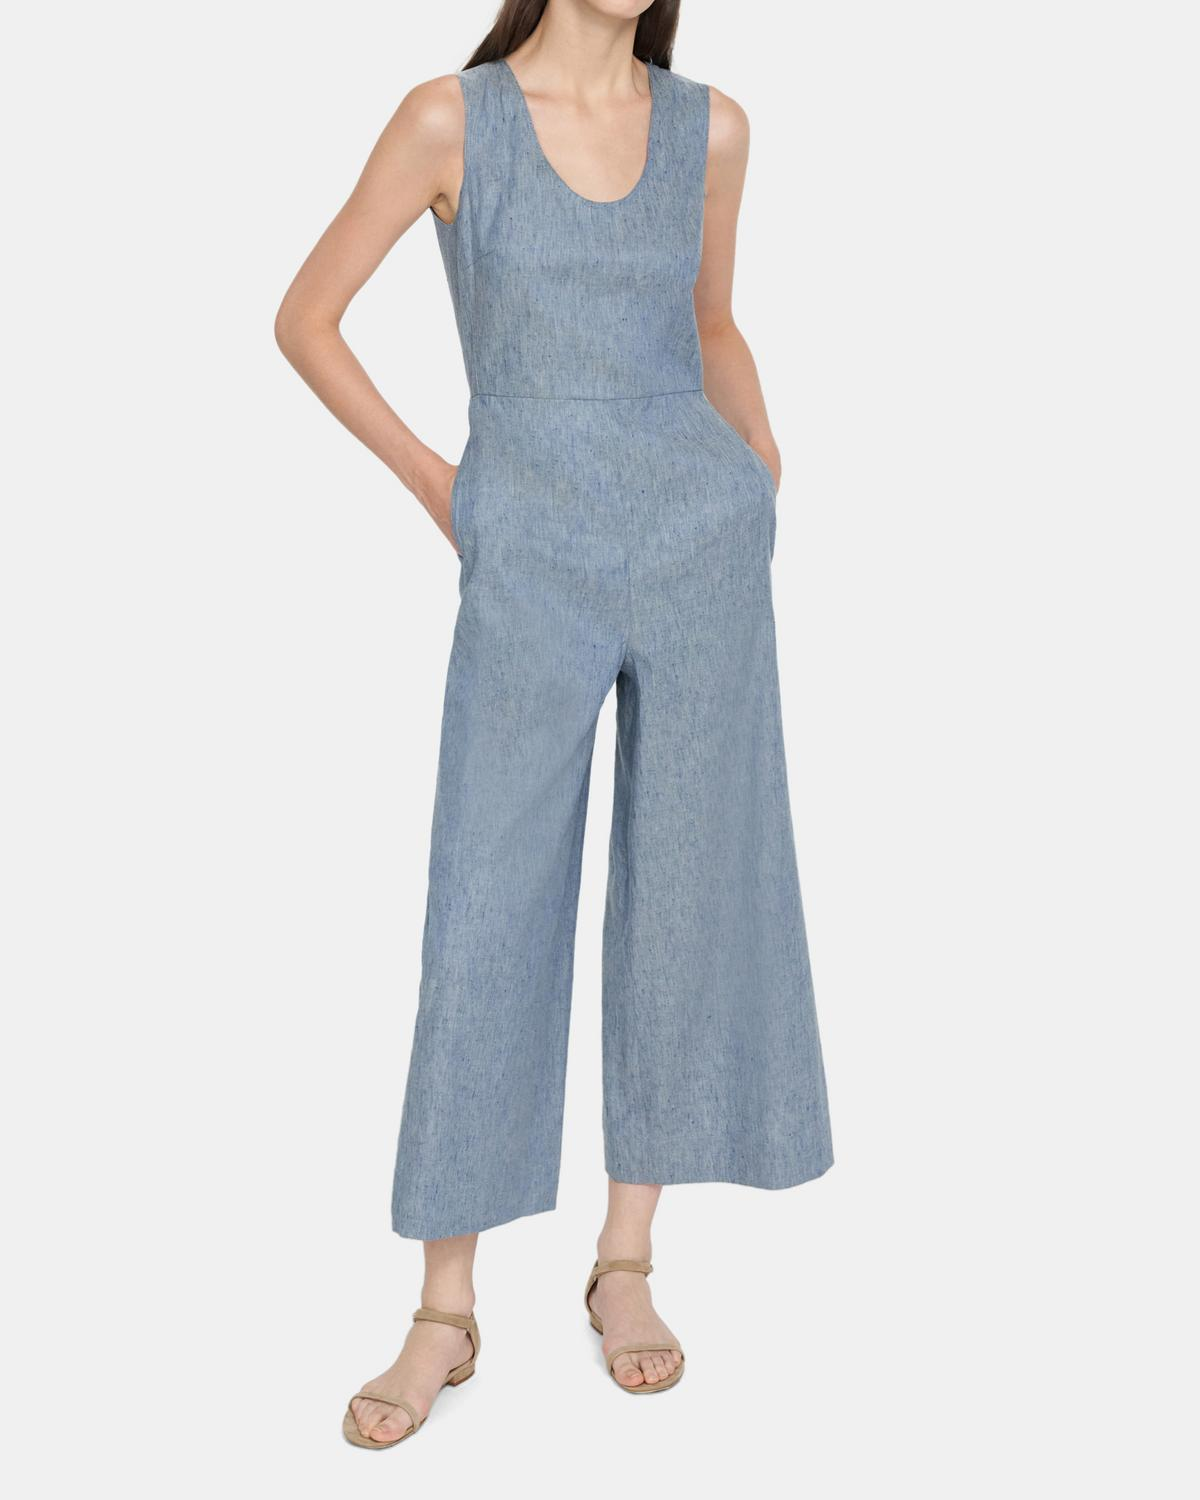 Seamed Jumpsuit in Linen Denim 0 - click to view larger image